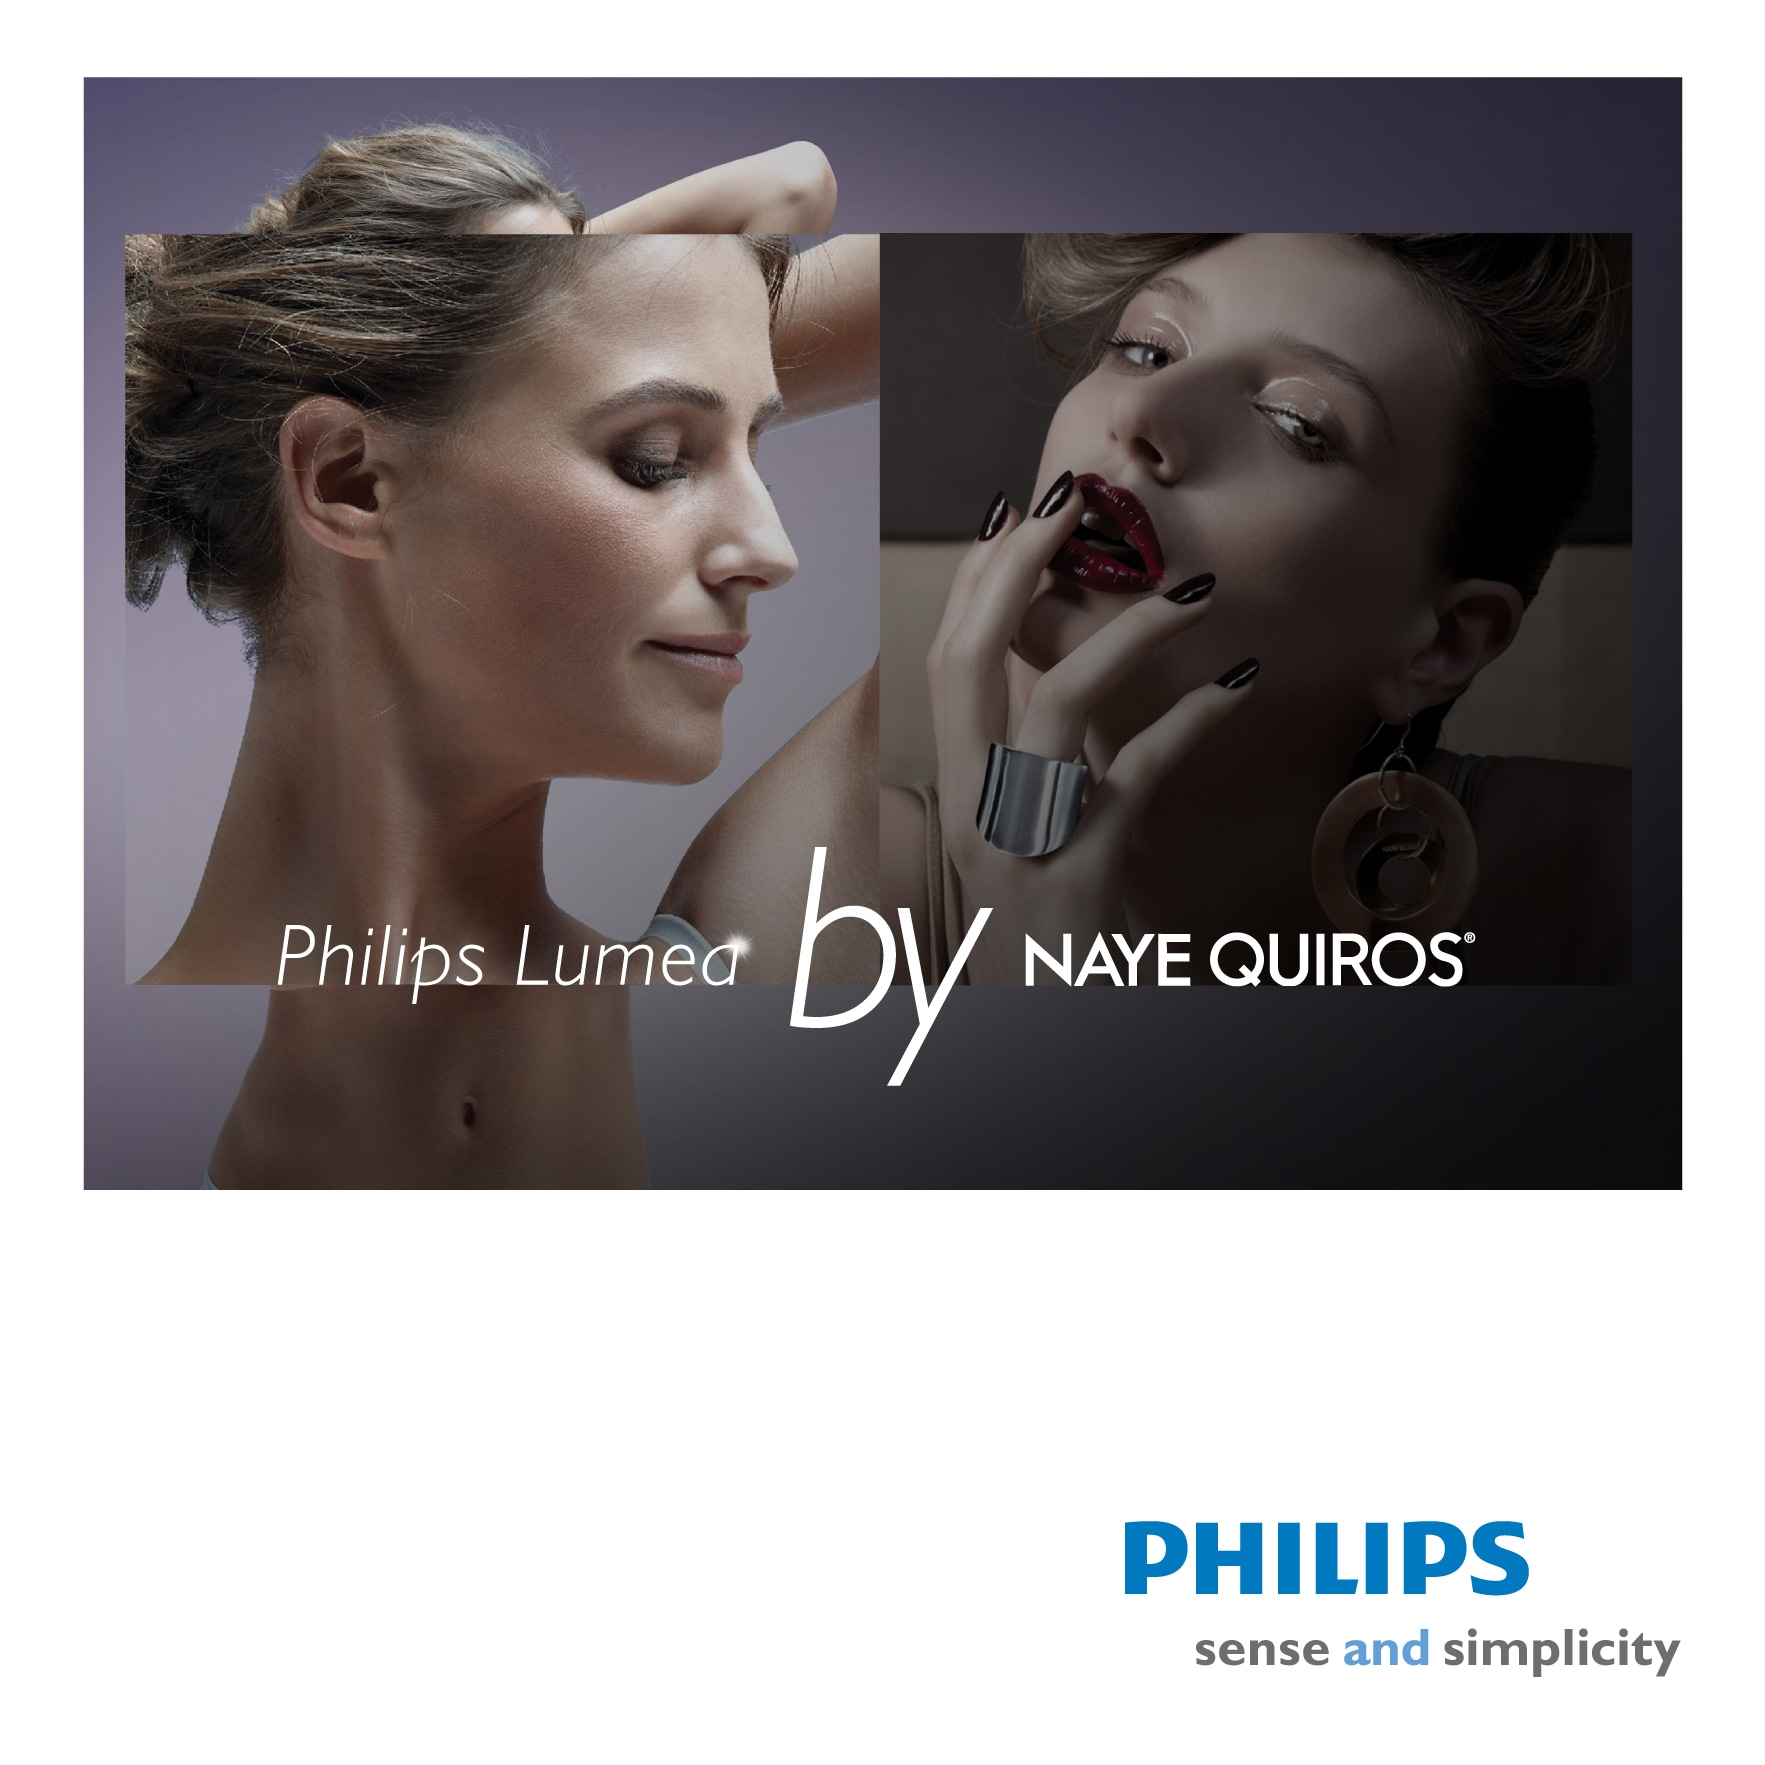 http://www.philips.com/consumerfiles/newscenter/ar_es/standard/about/news/press/2012/Imagenes/Lumea_1.jpg